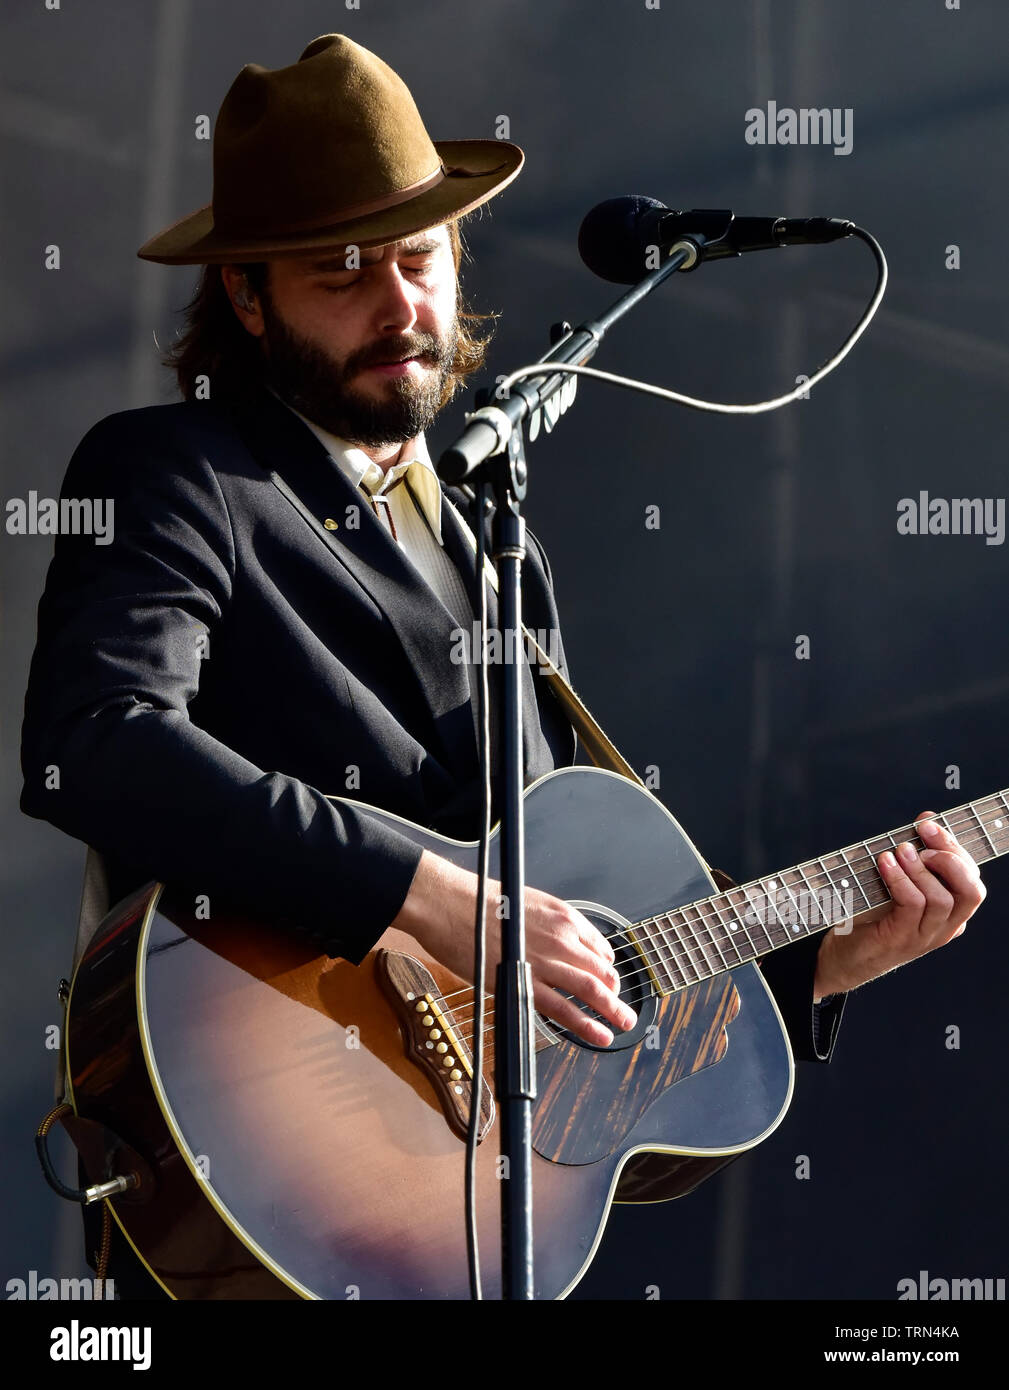 Lord Huron performing on stage at the BottleRock Festival 2019, Napa Valley,California. Stock Photo